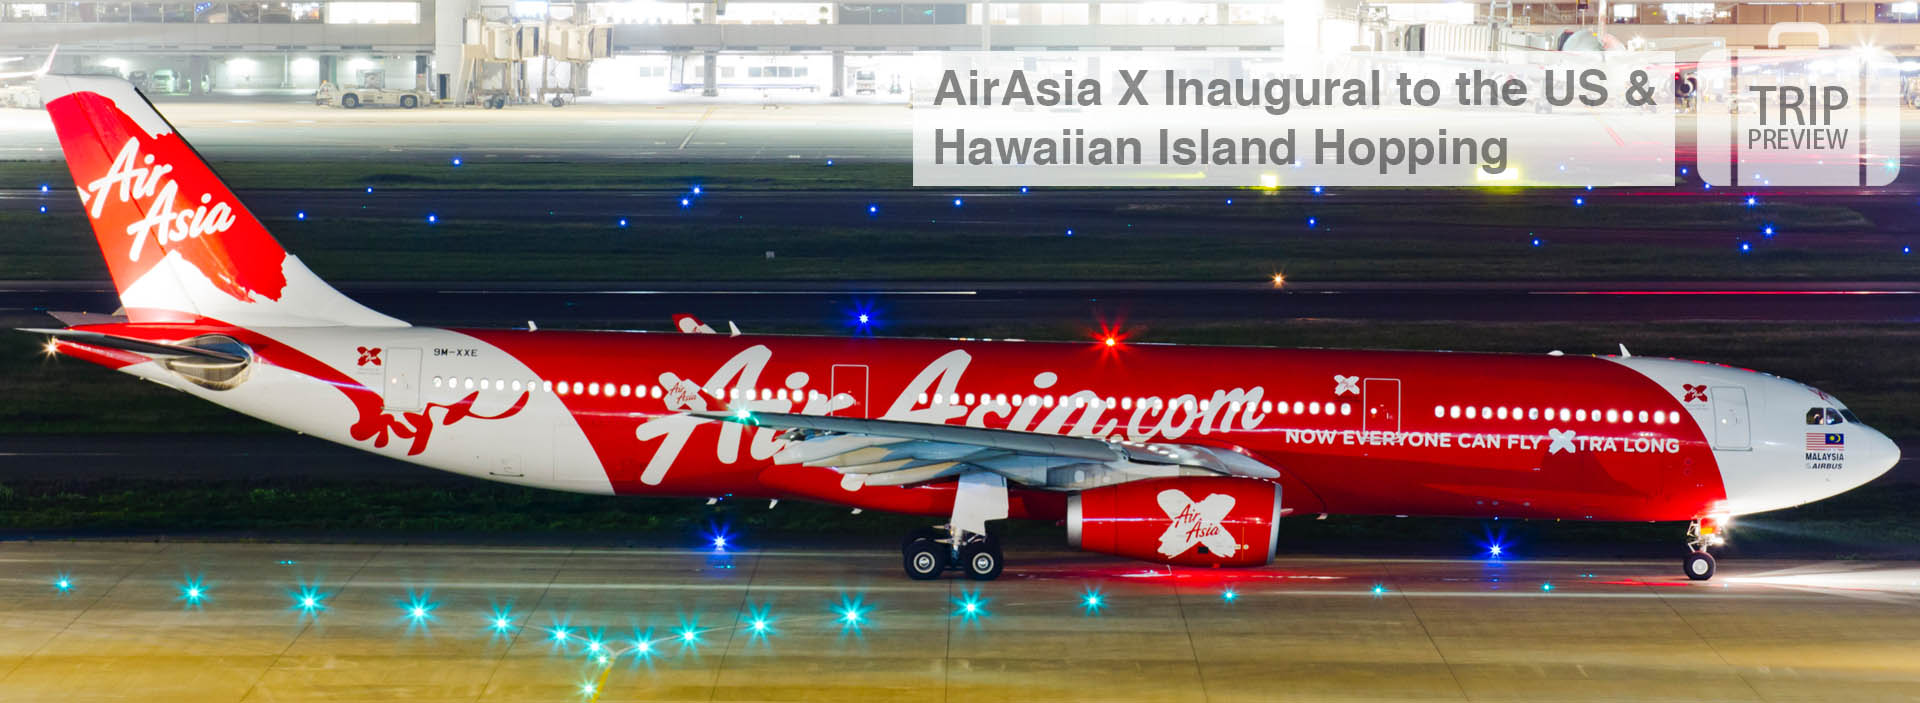 Trip Preview: AirAsia X Inaugural to the US & Hawaiian Island Hopping